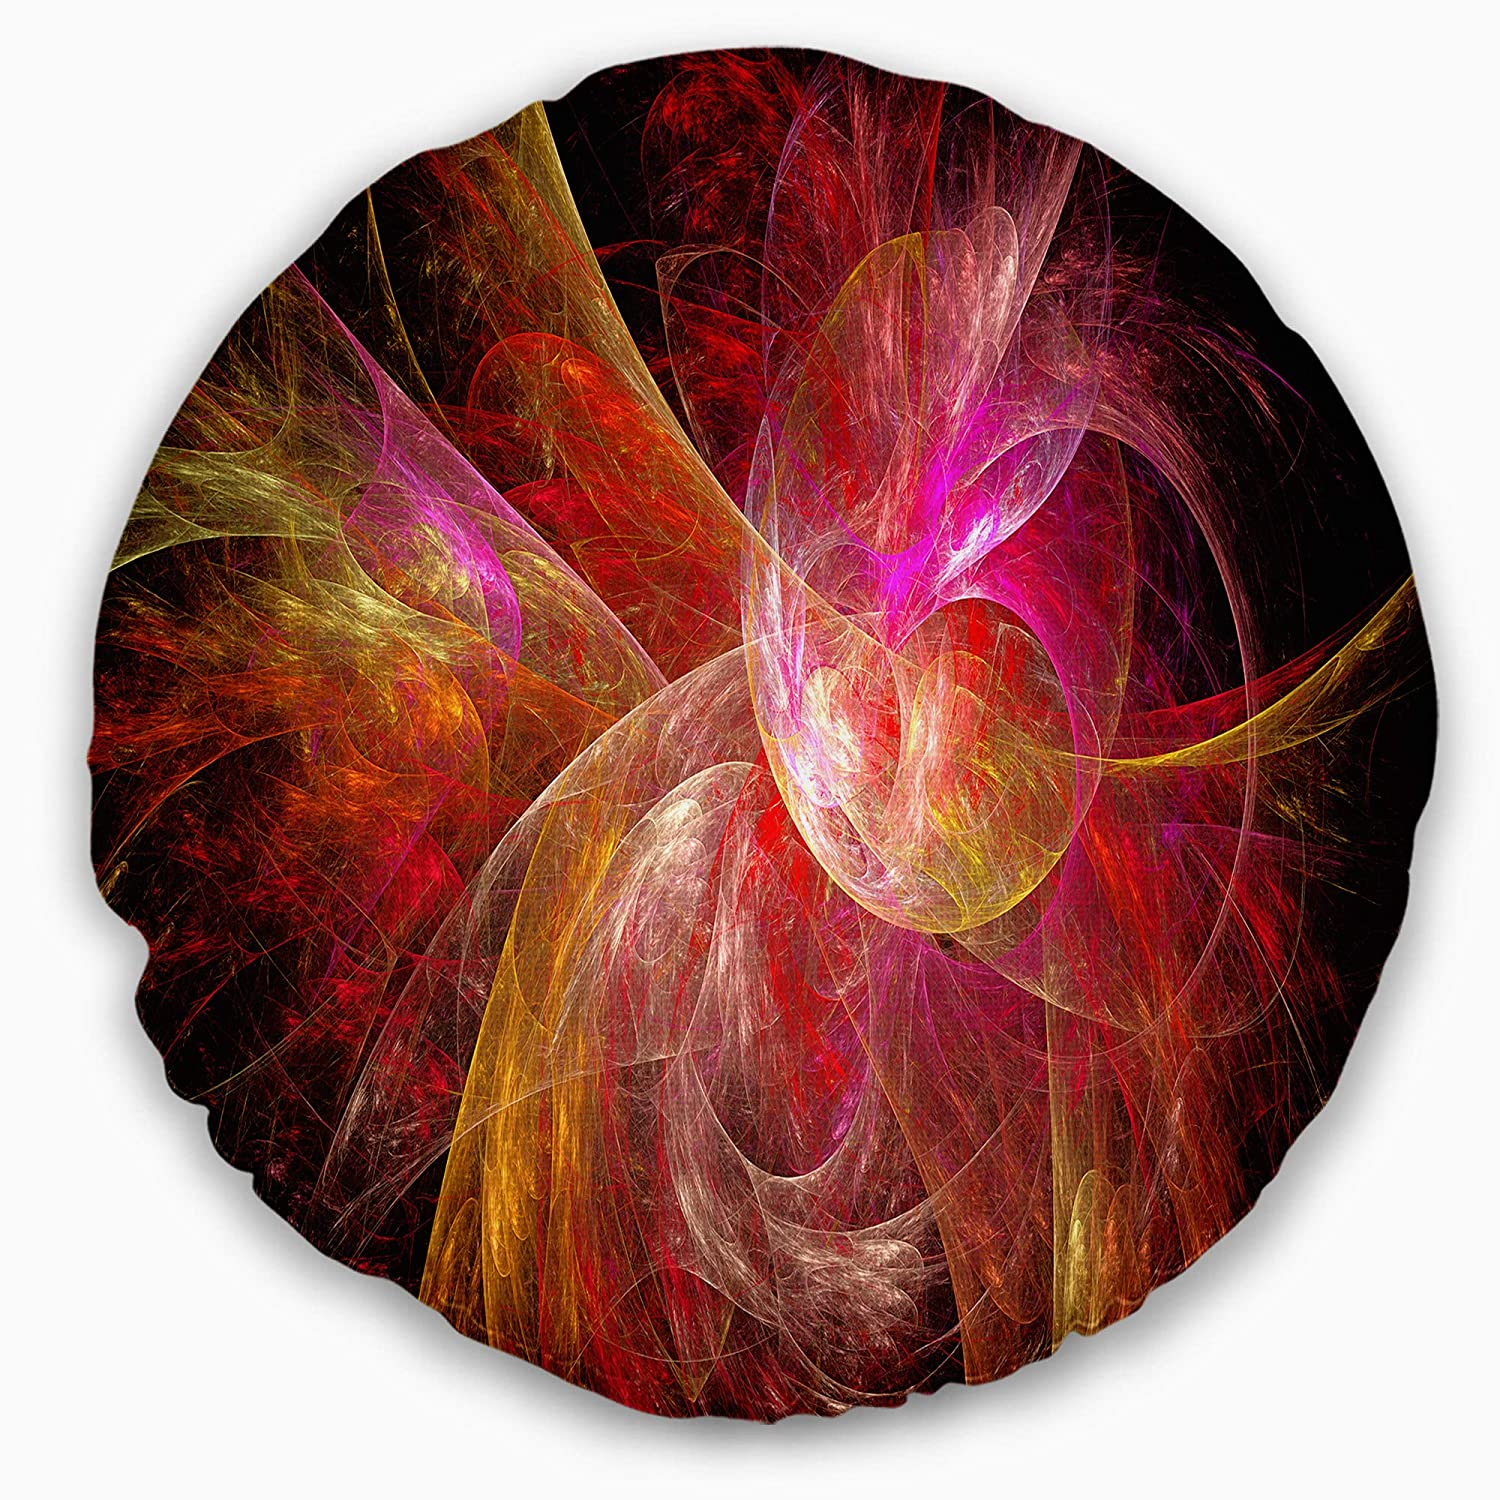 Sofa Throw Pillow 16 Inches Designart CU15933-16-16-C Pink on Black Fractal Illustration Abstract Round Cushion Cover for Living Room